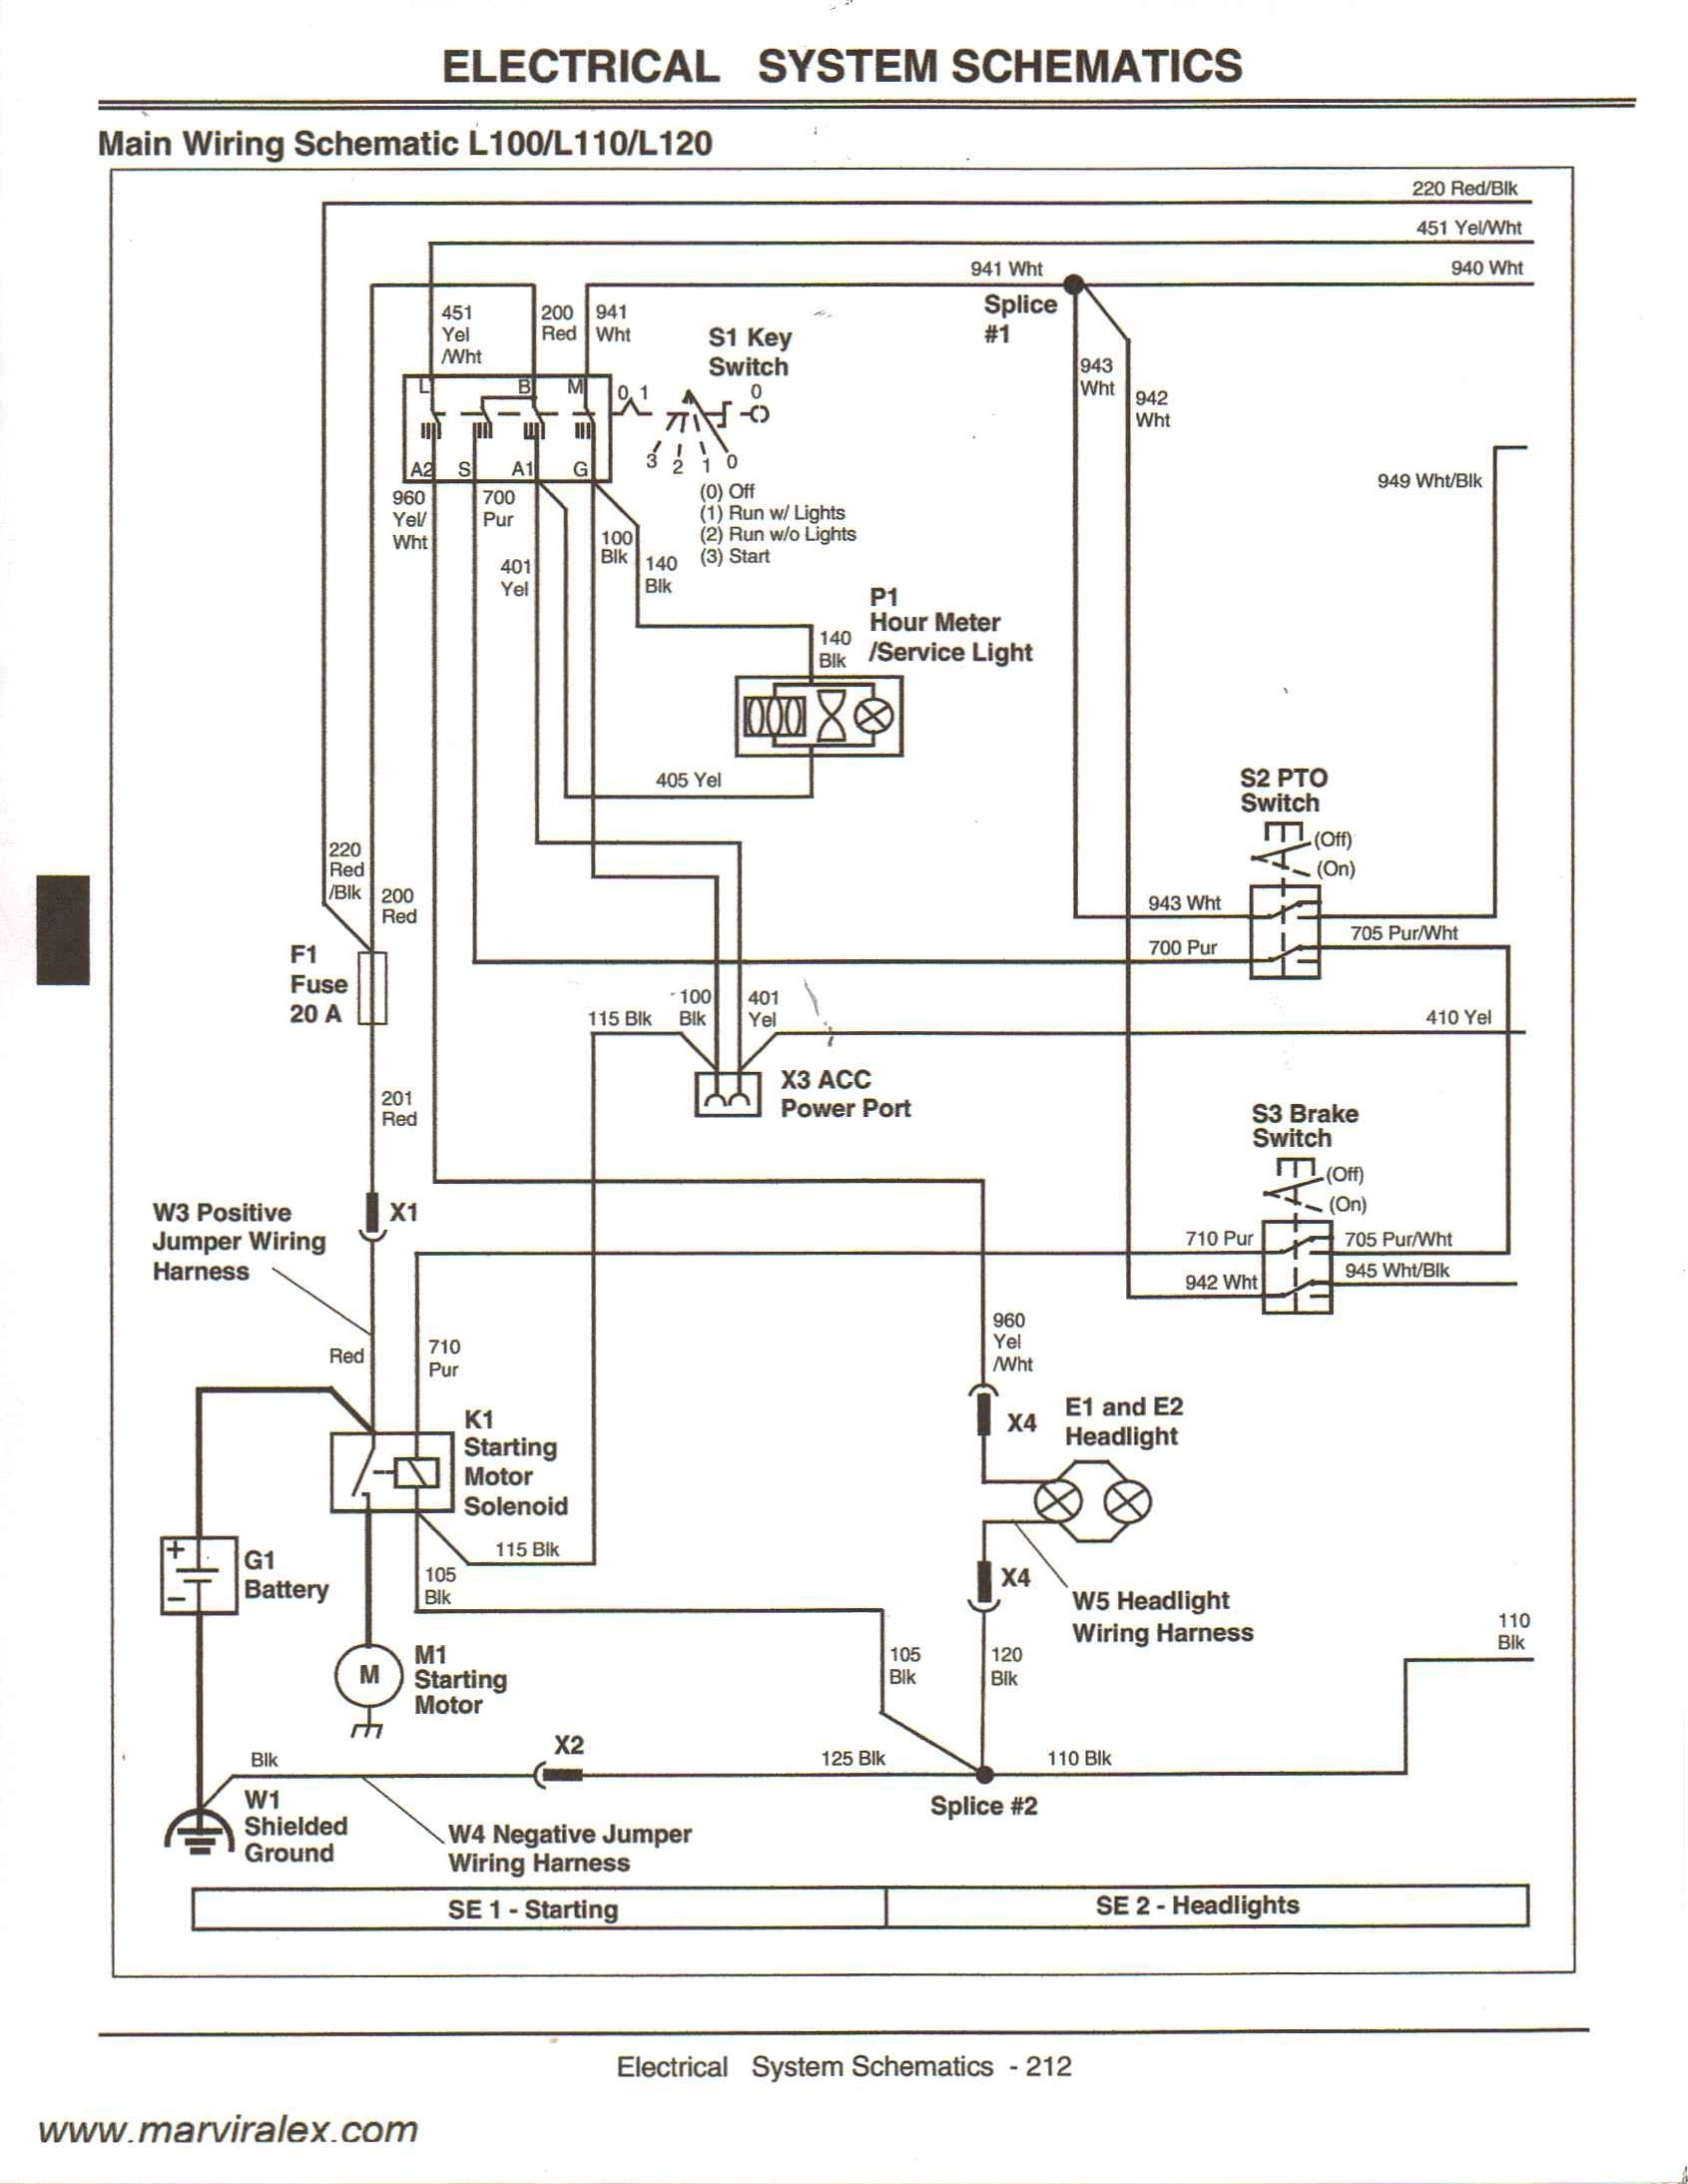 john deere gator ignition switch wiring diagram | free ... john deere a carburetor diagram john deere a wiring diagram